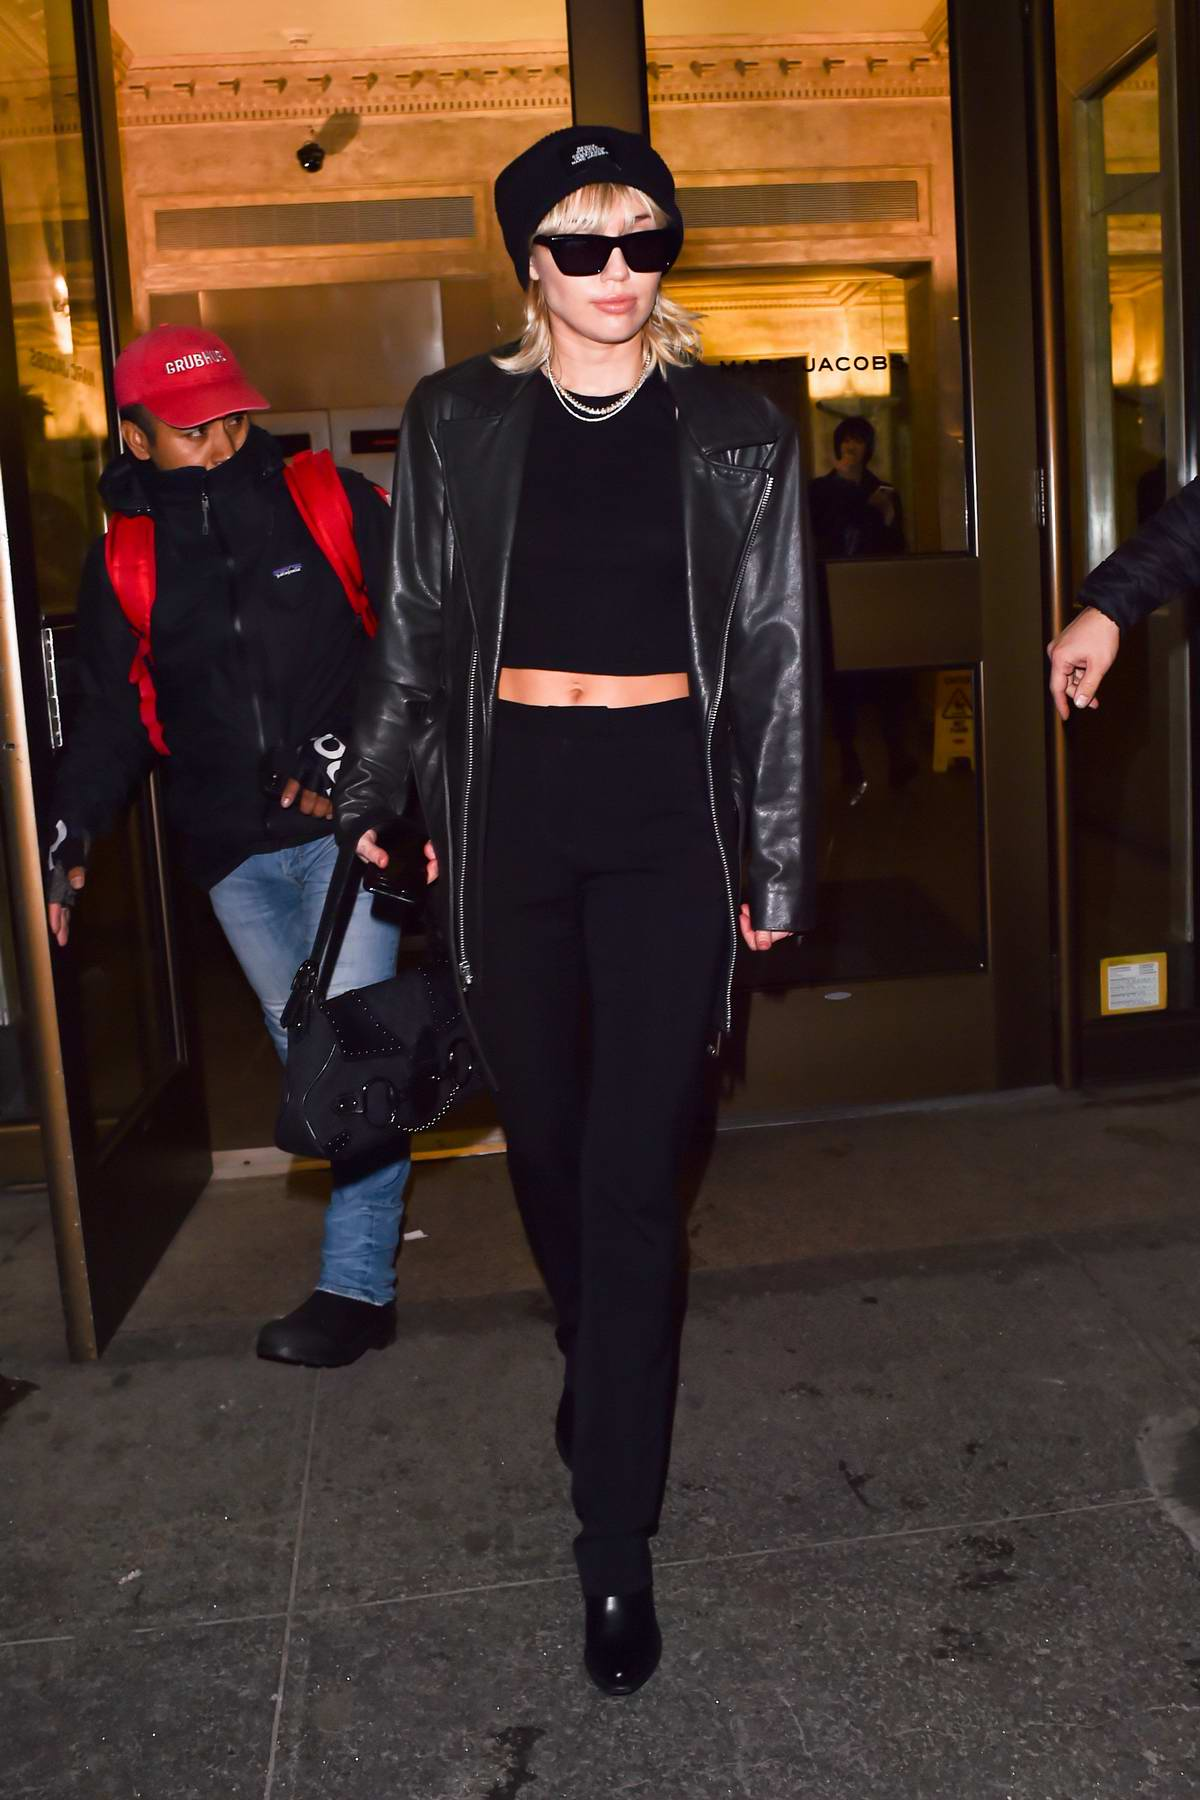 Miley Cyrus dons all-black as she leaves Marc Jacobs head office after a fashion fitting in New York City